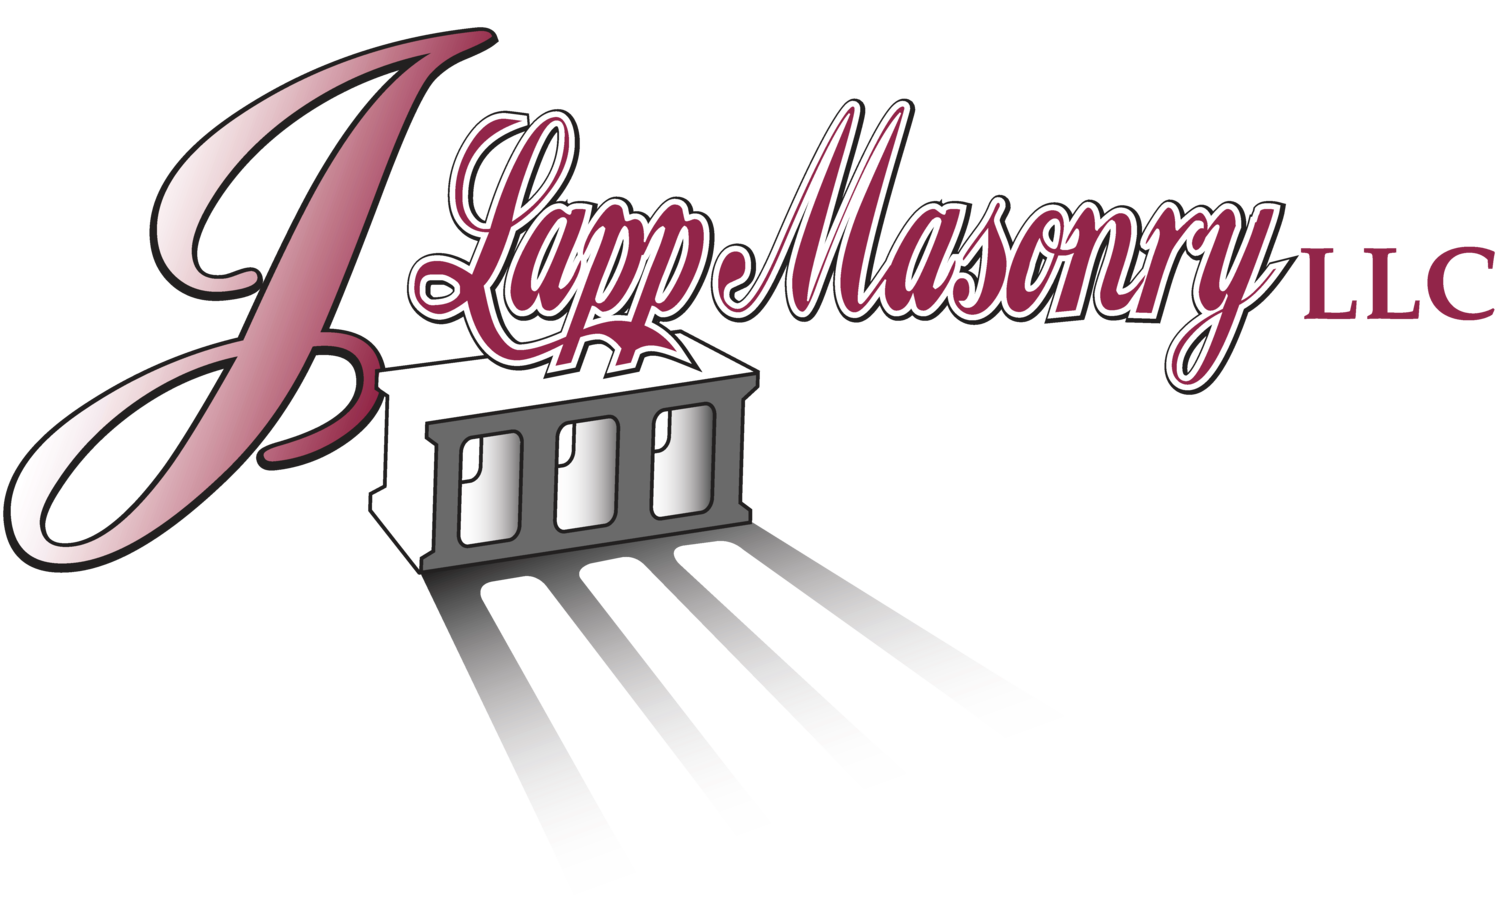 J. Lapp Masonry, LLC Commercial and Residential Masonry and Concrete